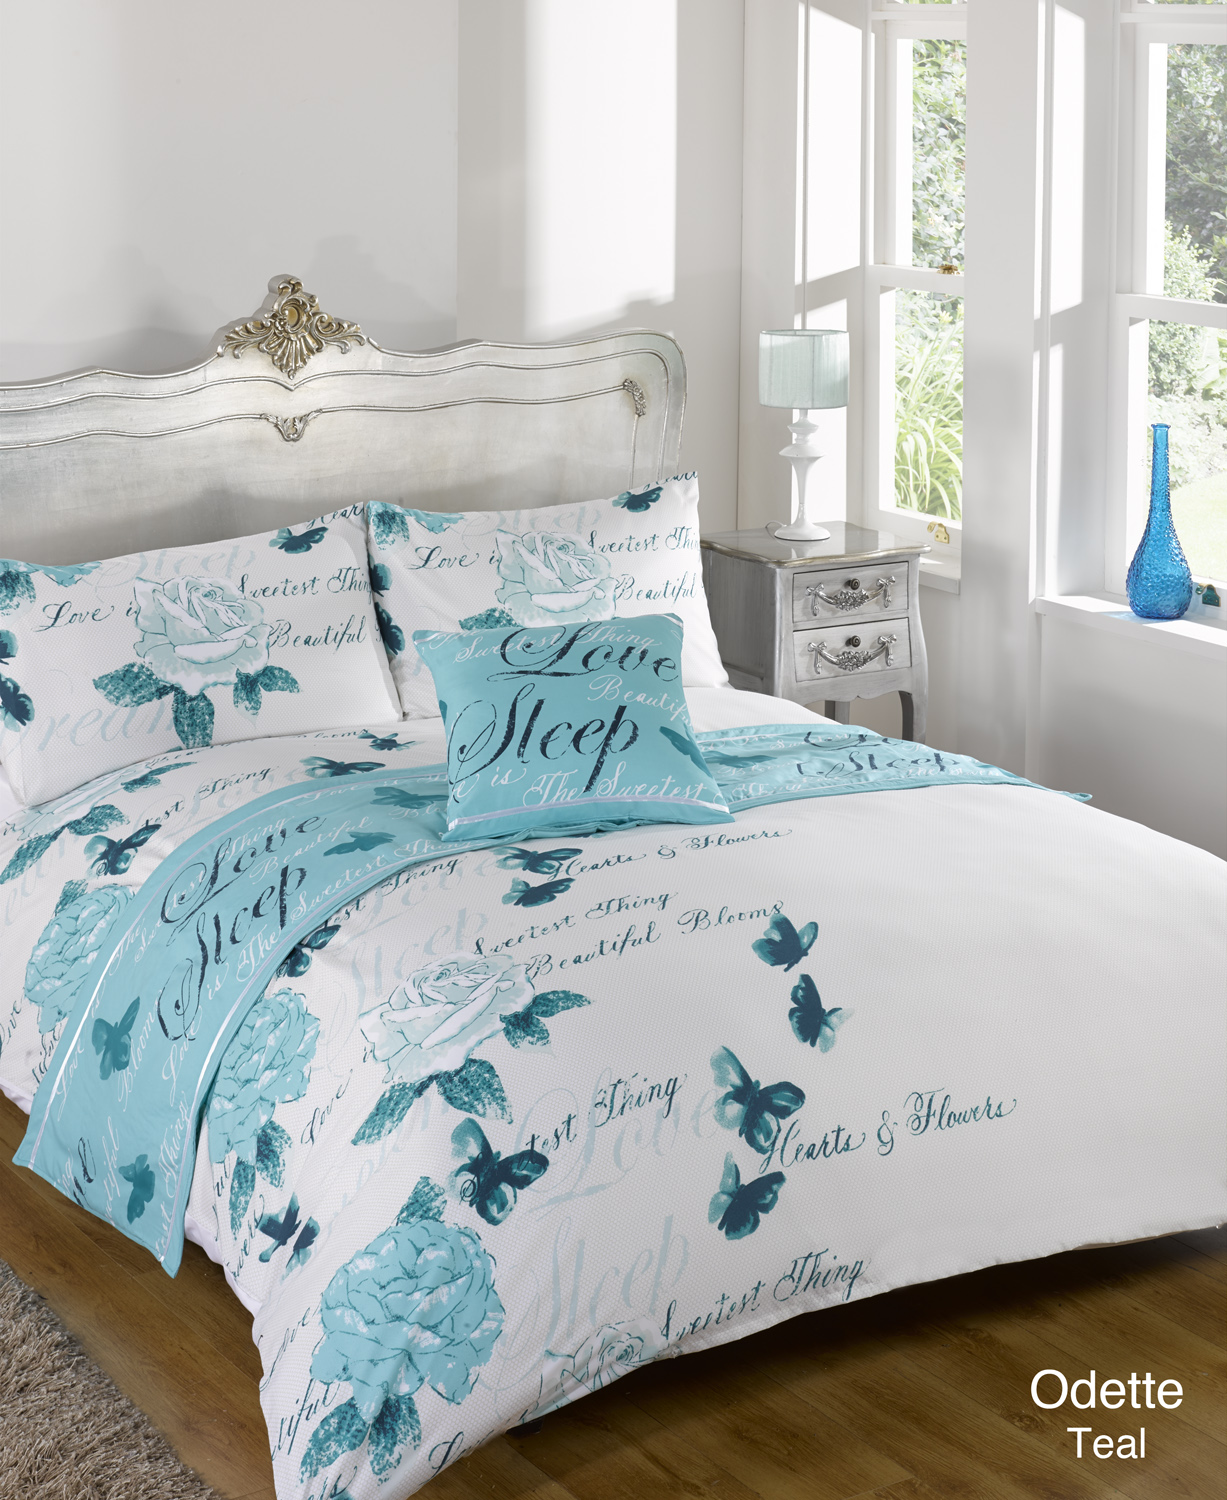 Teal Super King Bedding